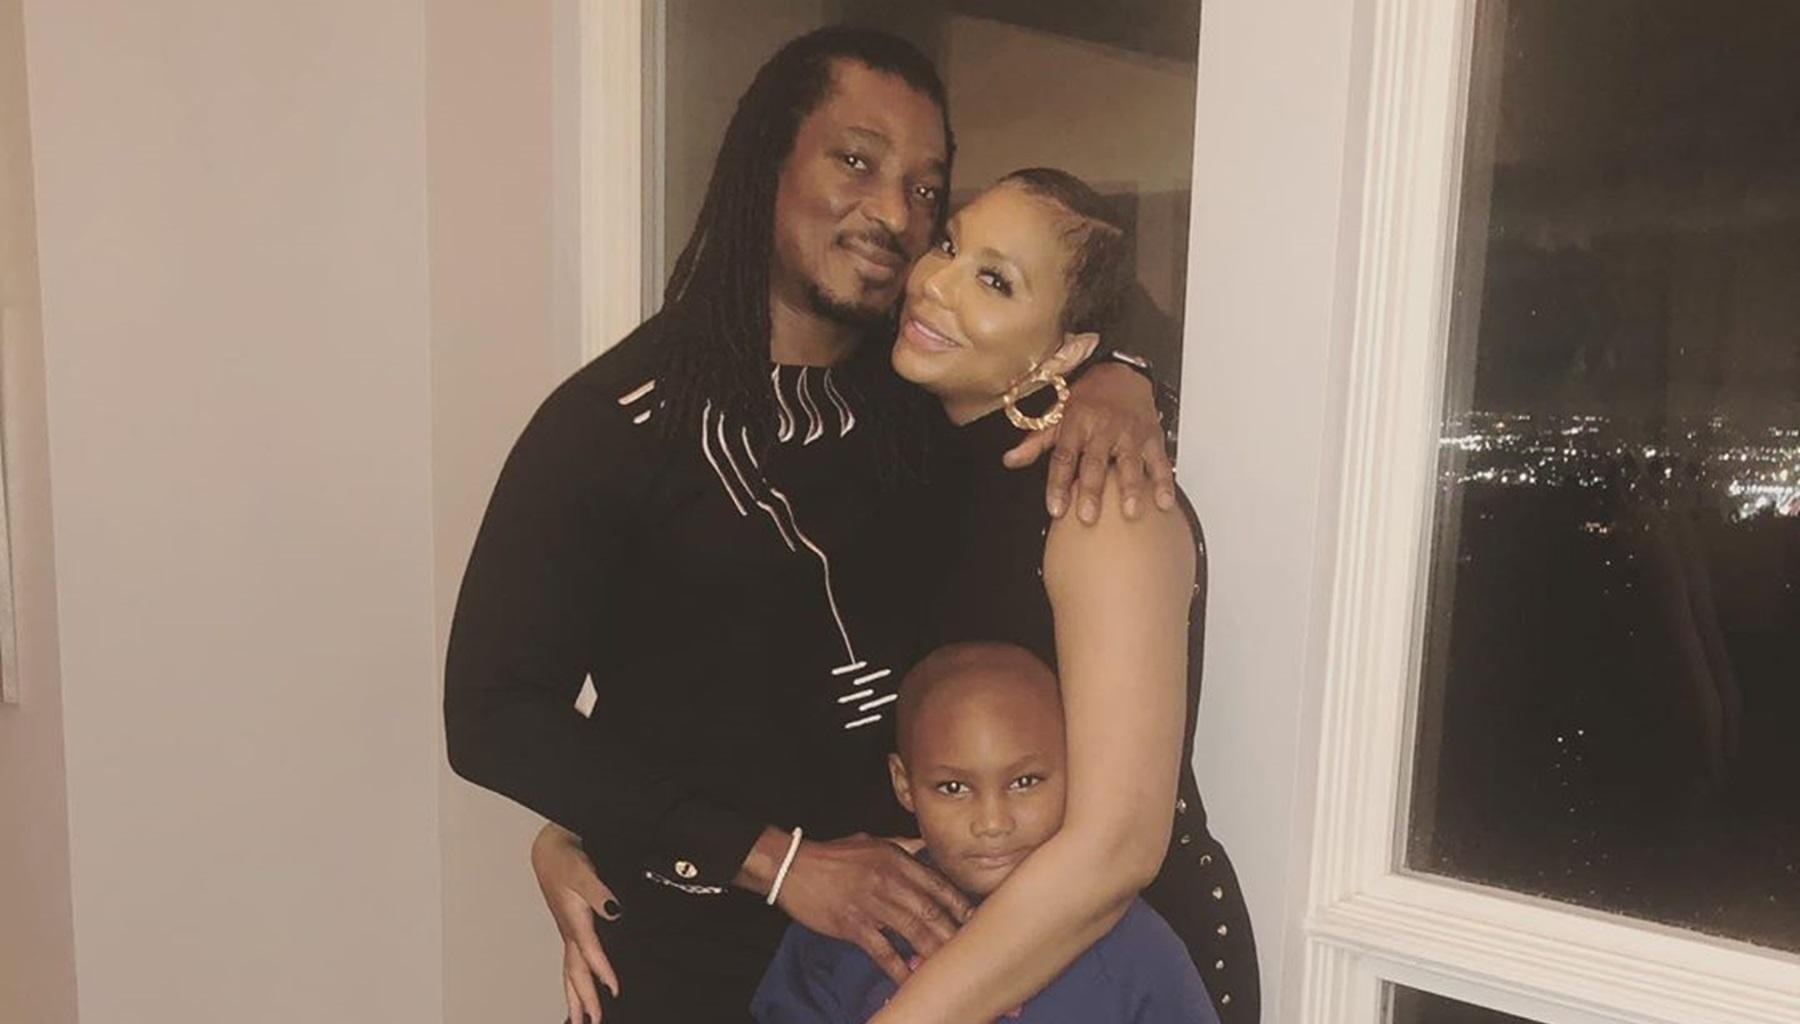 Tamar Braxton's BF, David Adefeso, Is Building The Most Amazing Relationship With Her Son - See The Video